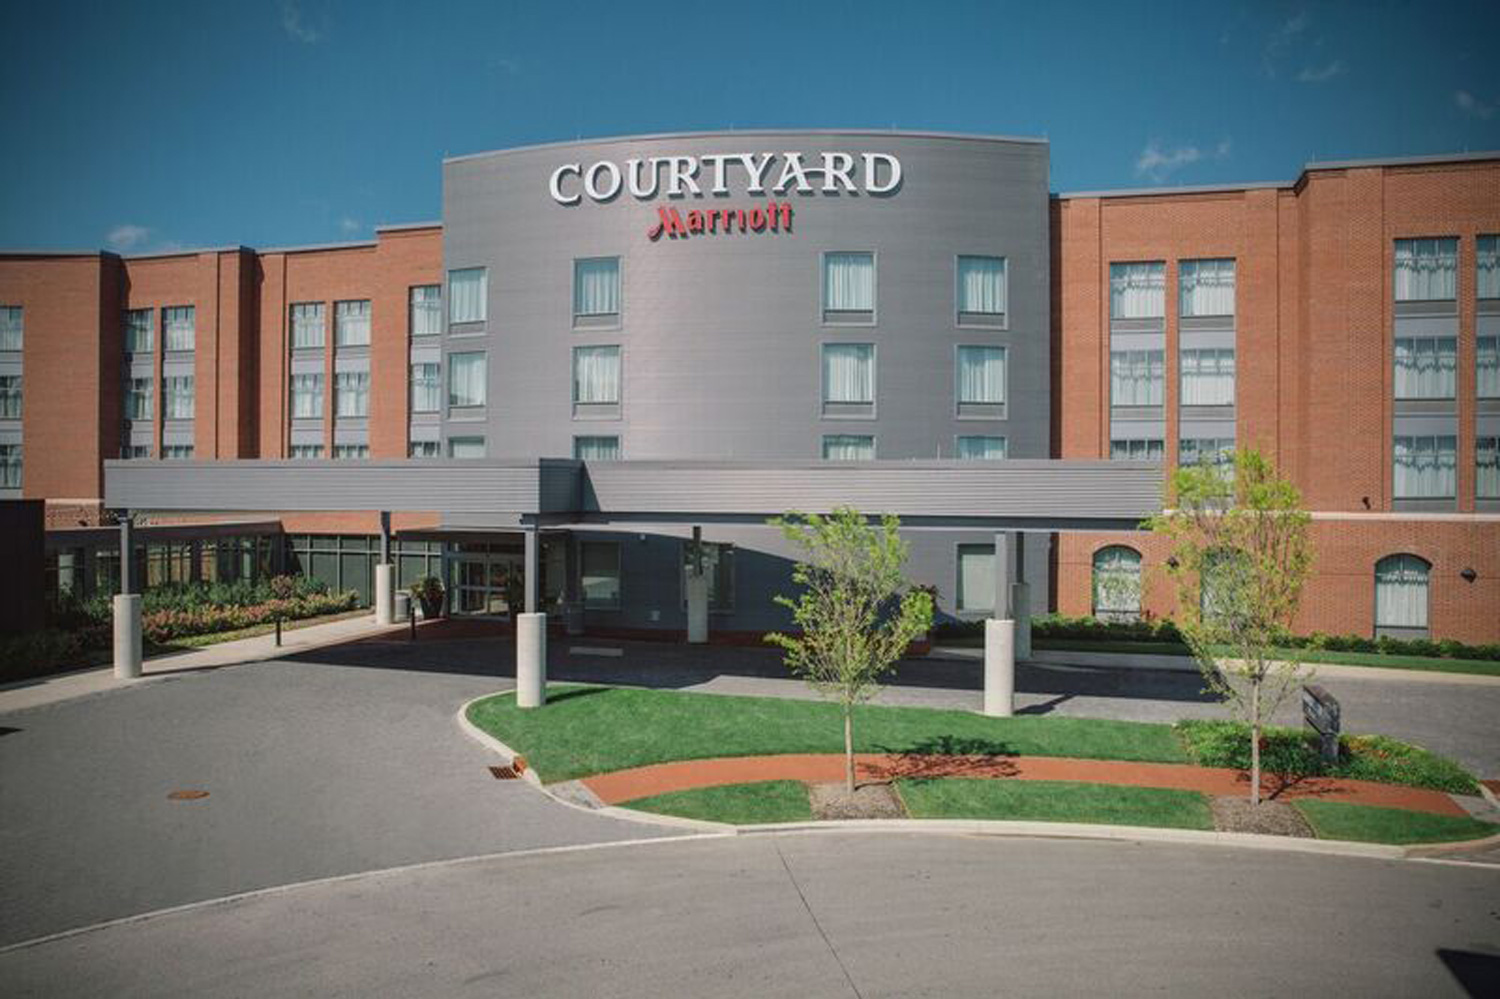 courtyard-marriott-exterior.jpg